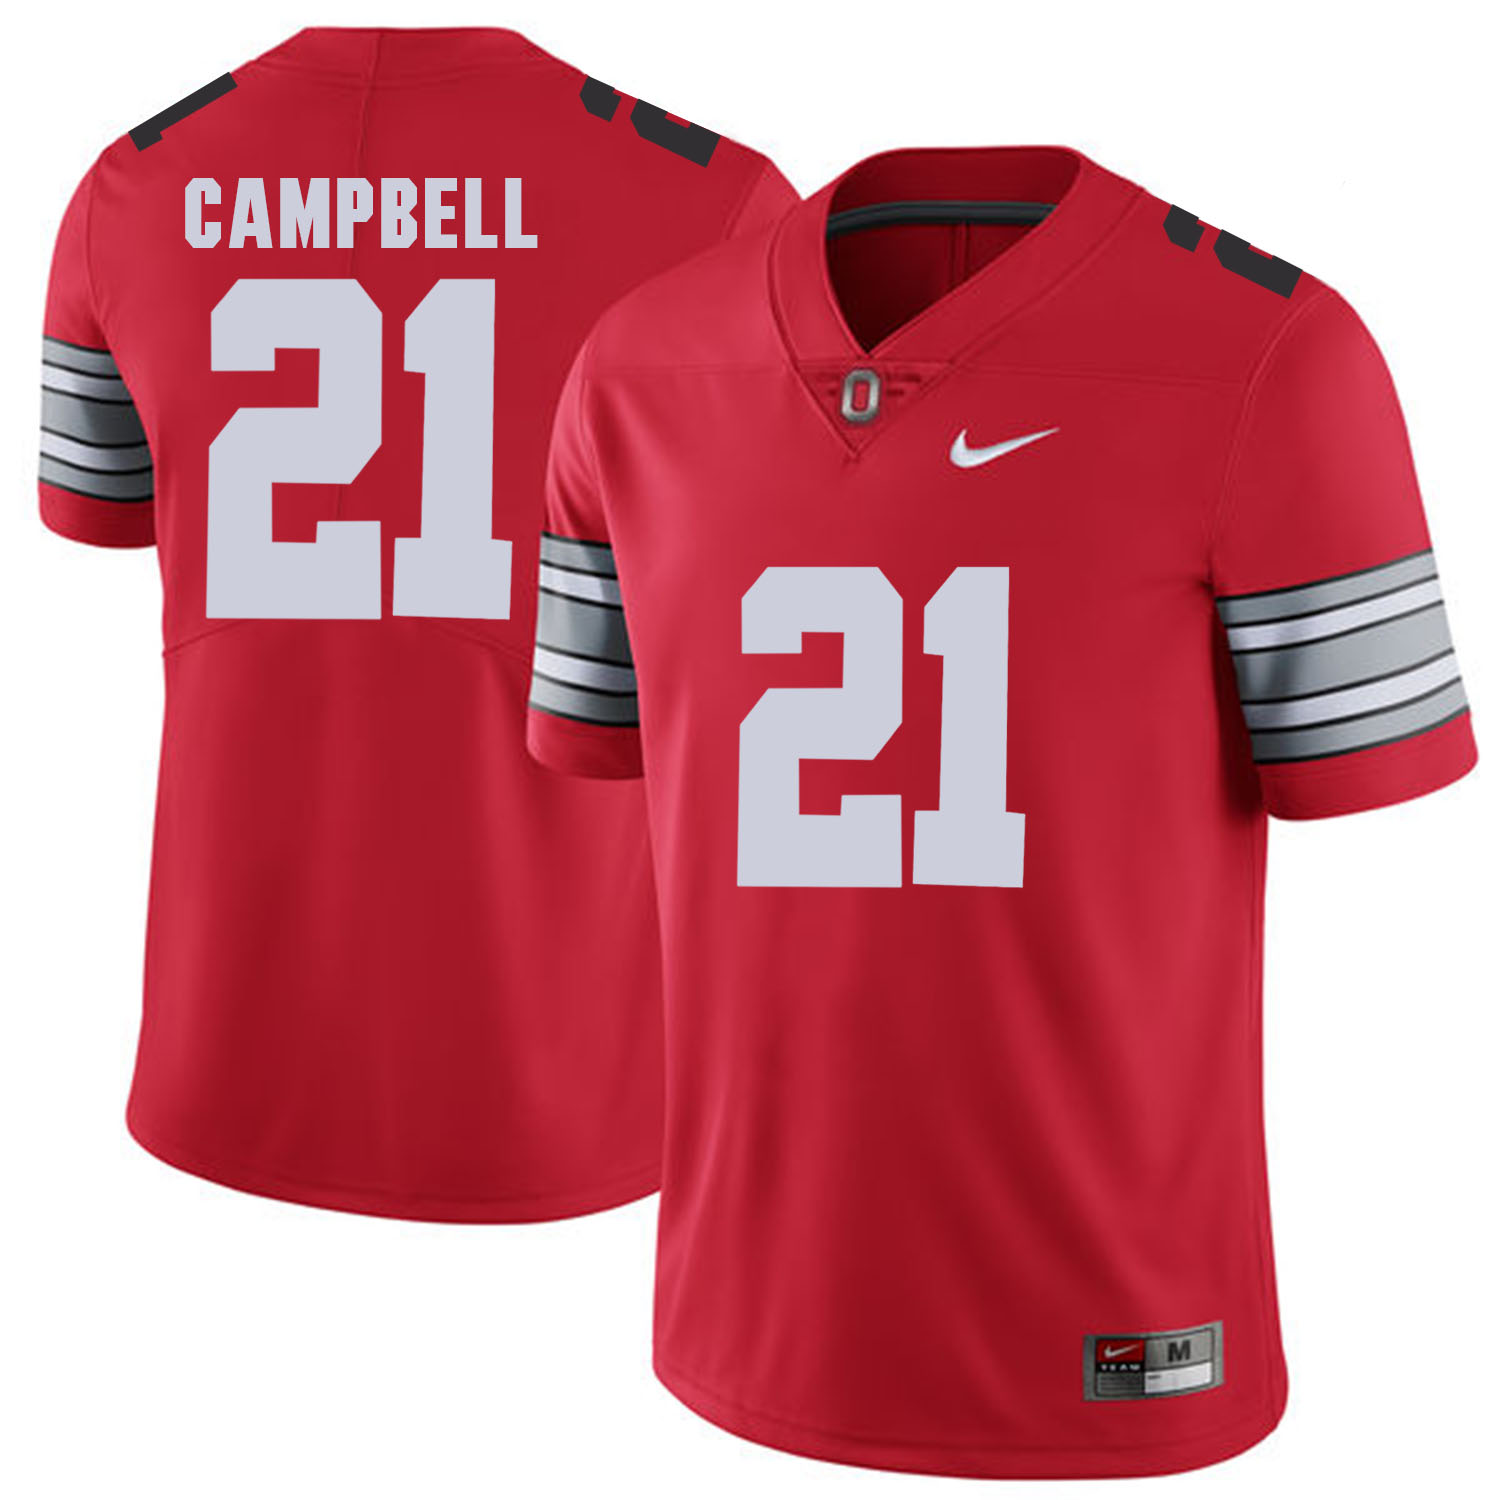 Ohio State Buckeyes 21 Parris Campbell Red 2018 Spring Game College Football Limited Jersey